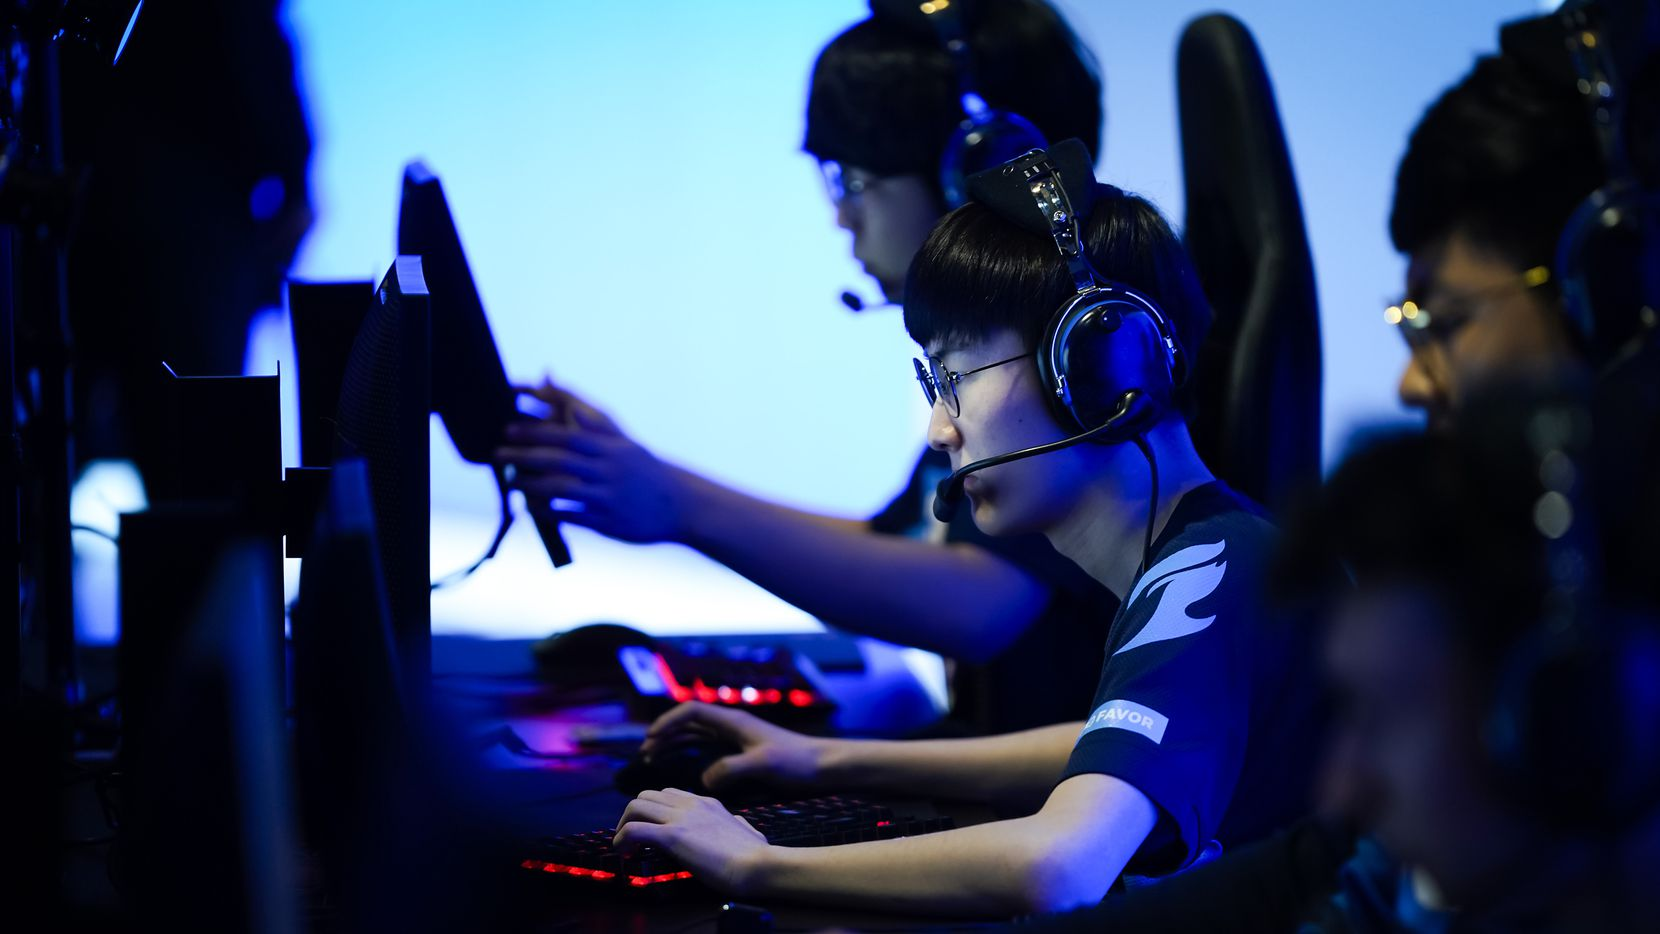 """Jang """"Decay"""" Gui-un of the Dallas Fuel prepares for the start of a Overwatch League match against the Los Angeles Valiant at the Arlington Esports Stadium on Saturday, Feb. 8, 2020, in Arlington."""